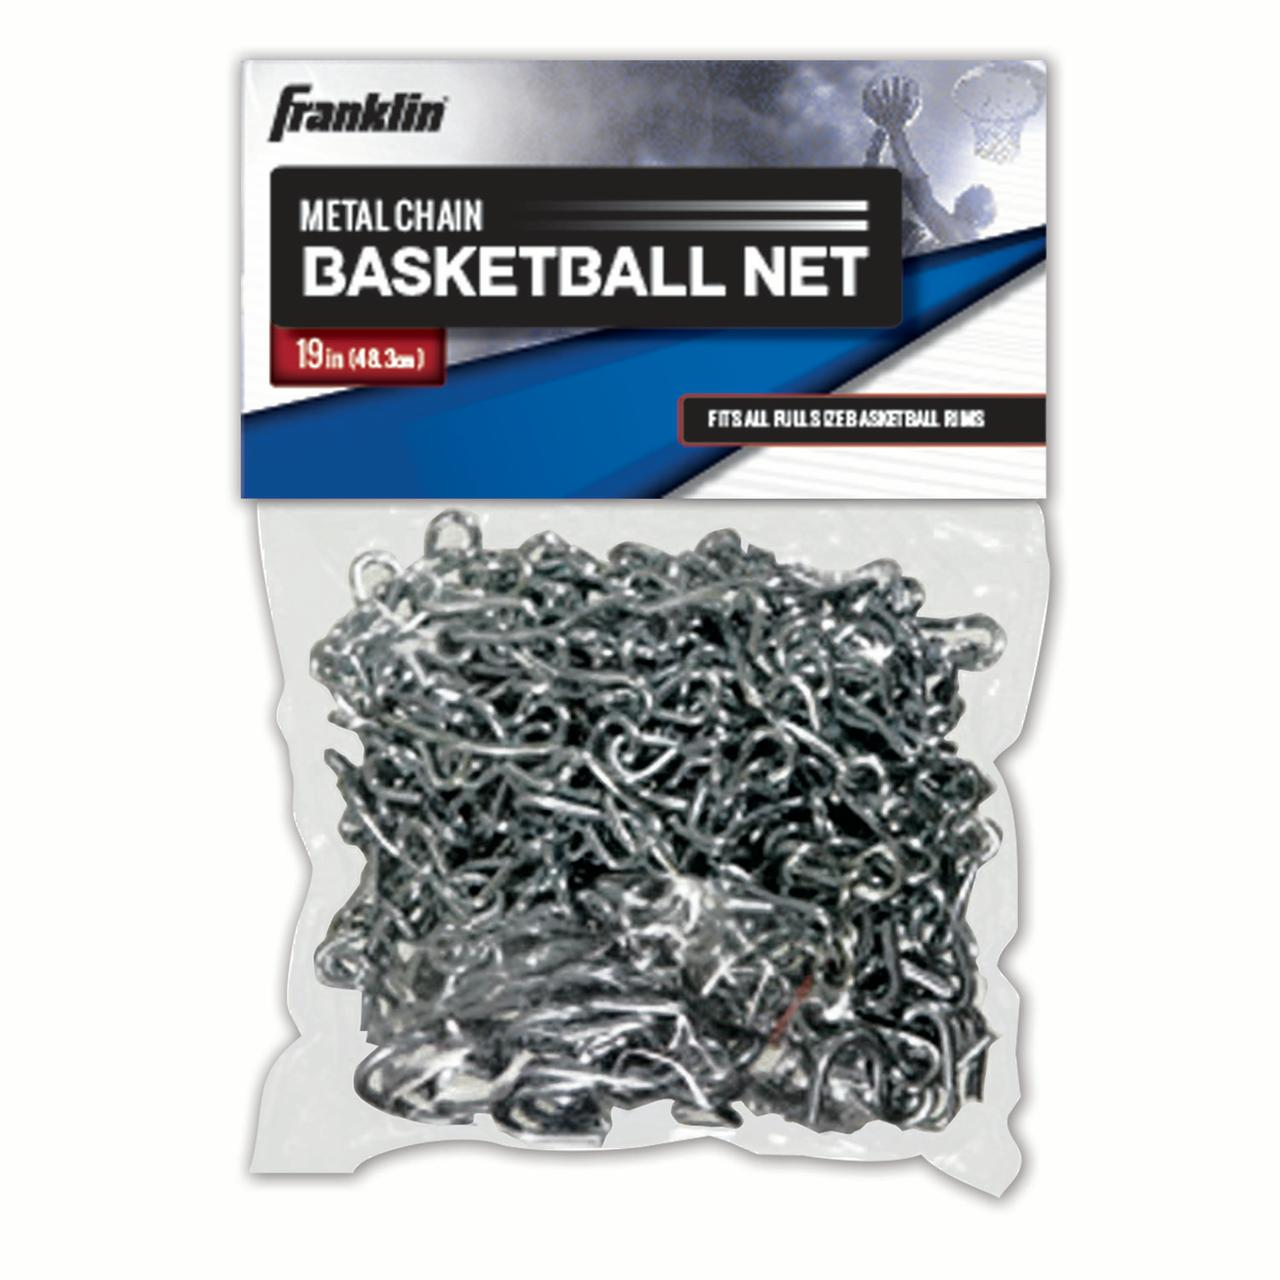 Franklin Sports Metal Chain Basketball Net